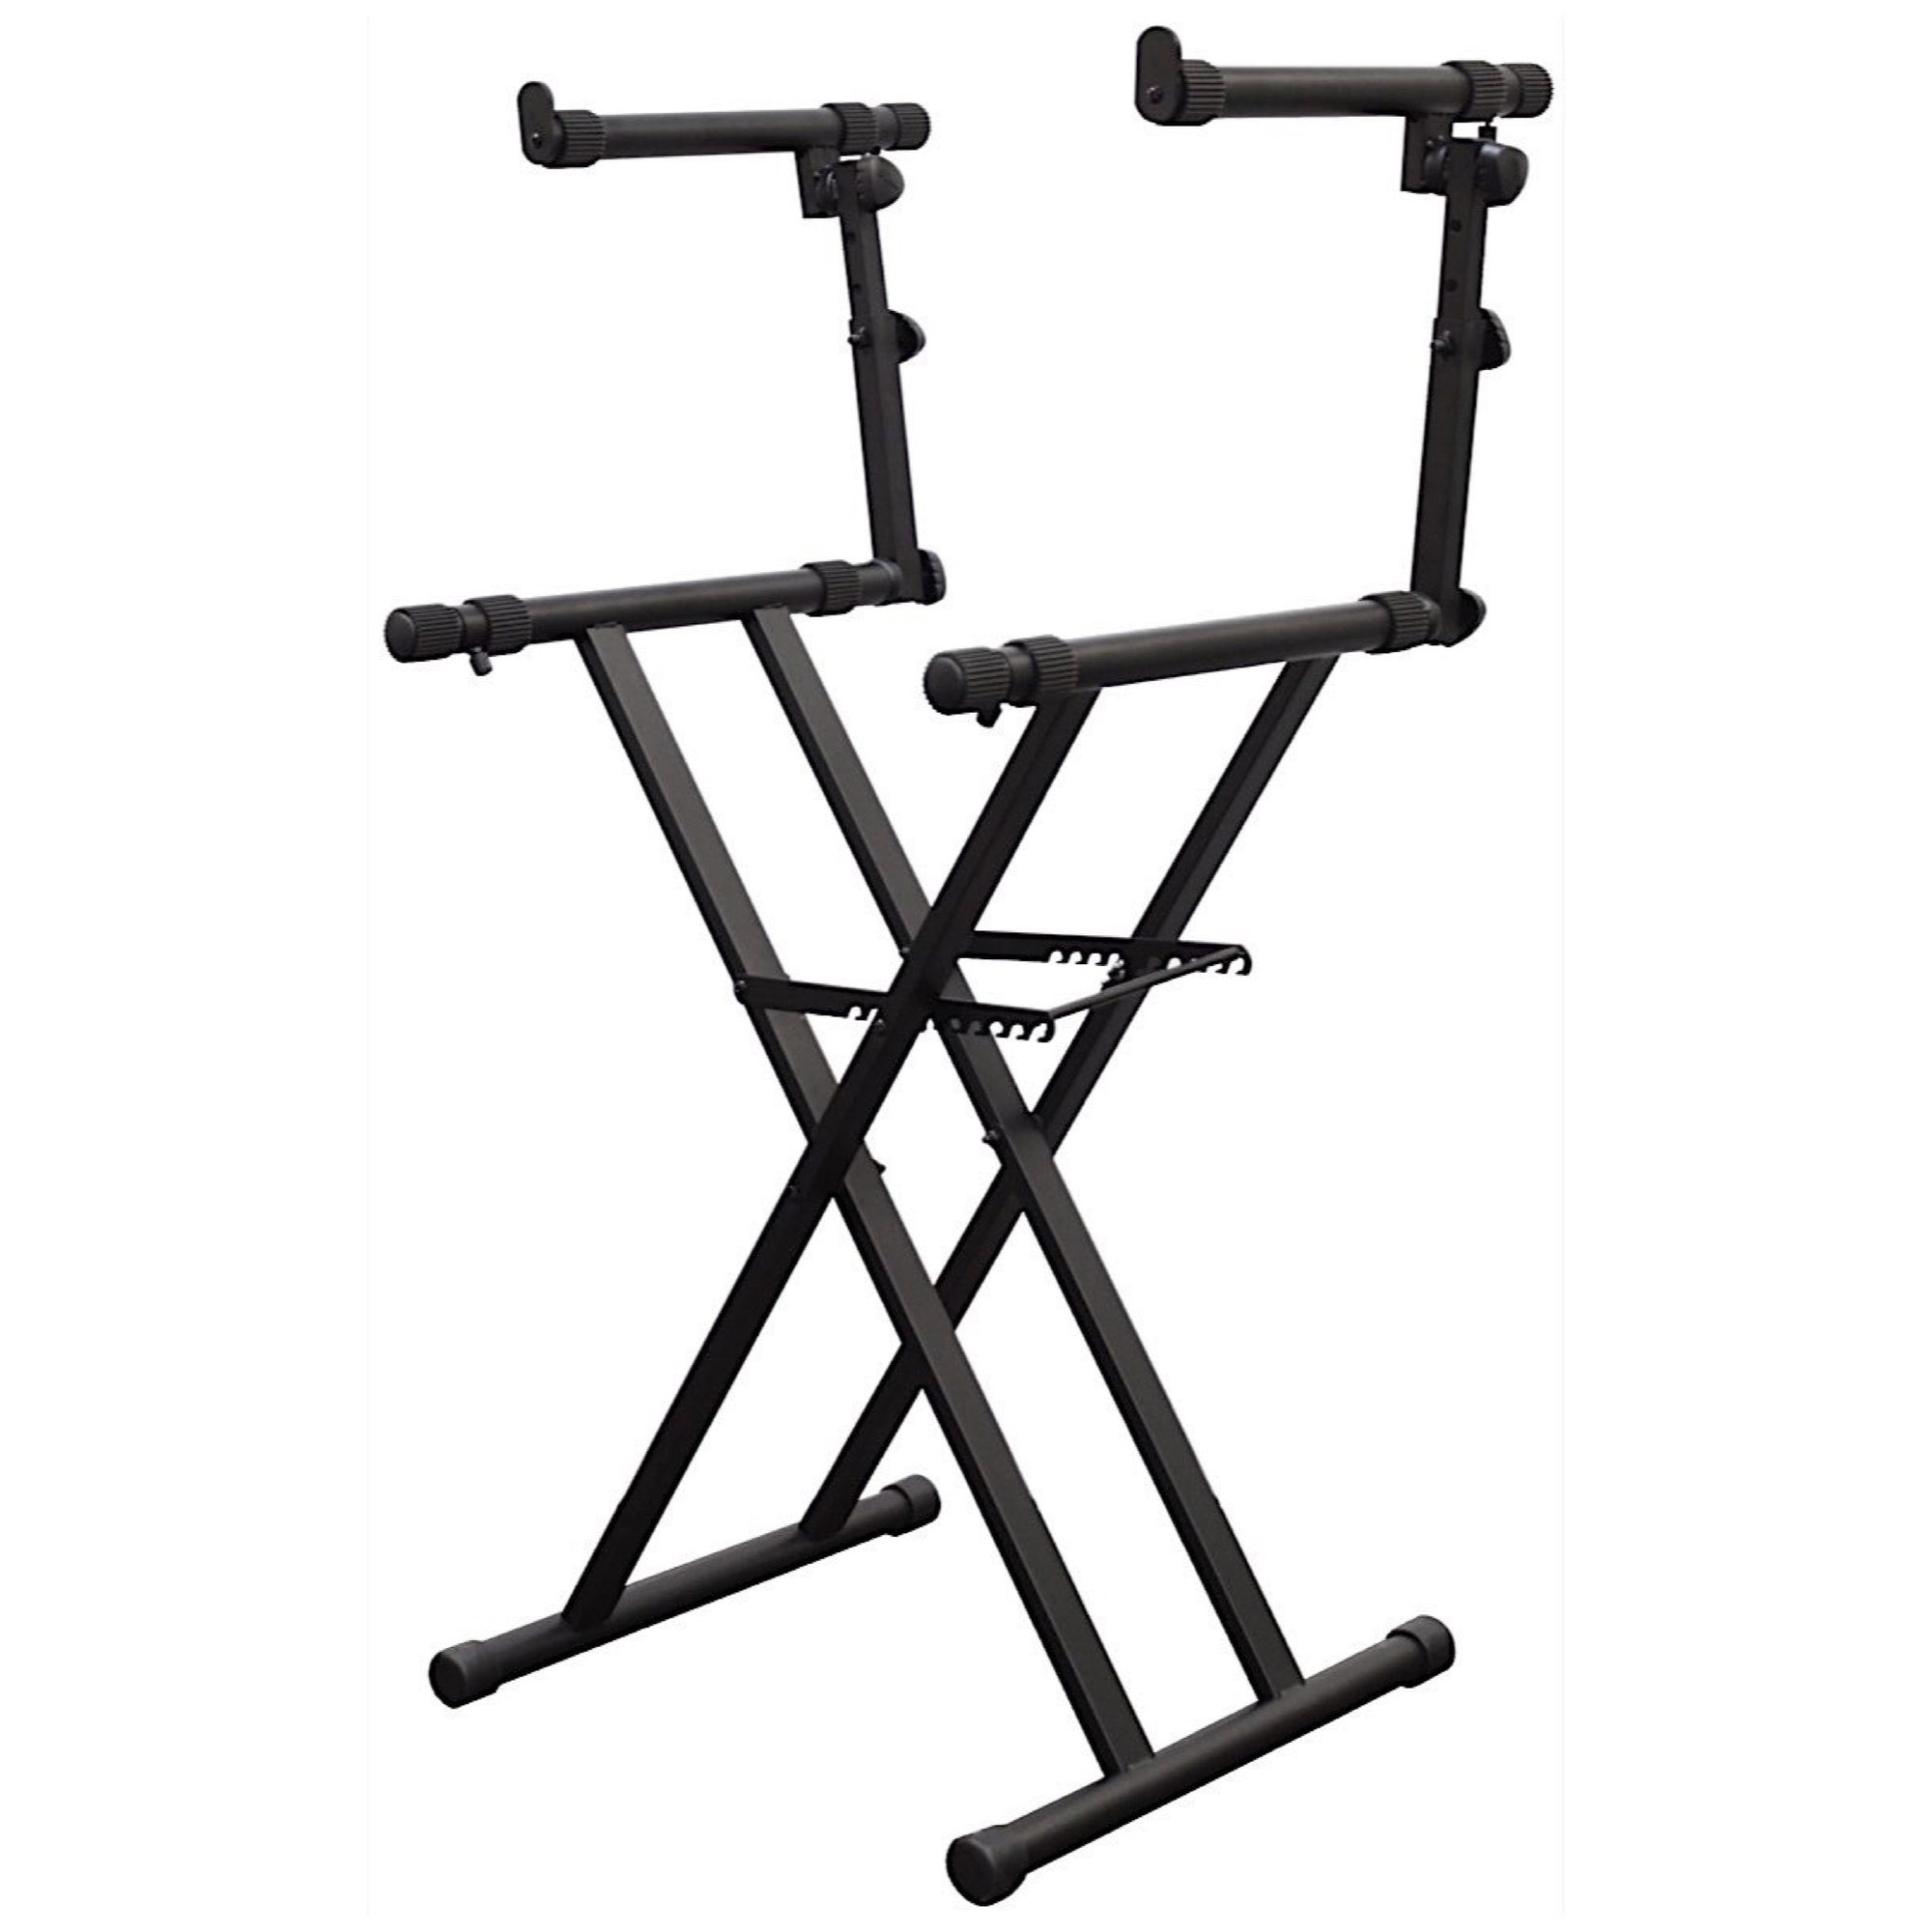 Odyssey X-Stand Two Dual-Tier Heavy-Duty Folding Stand